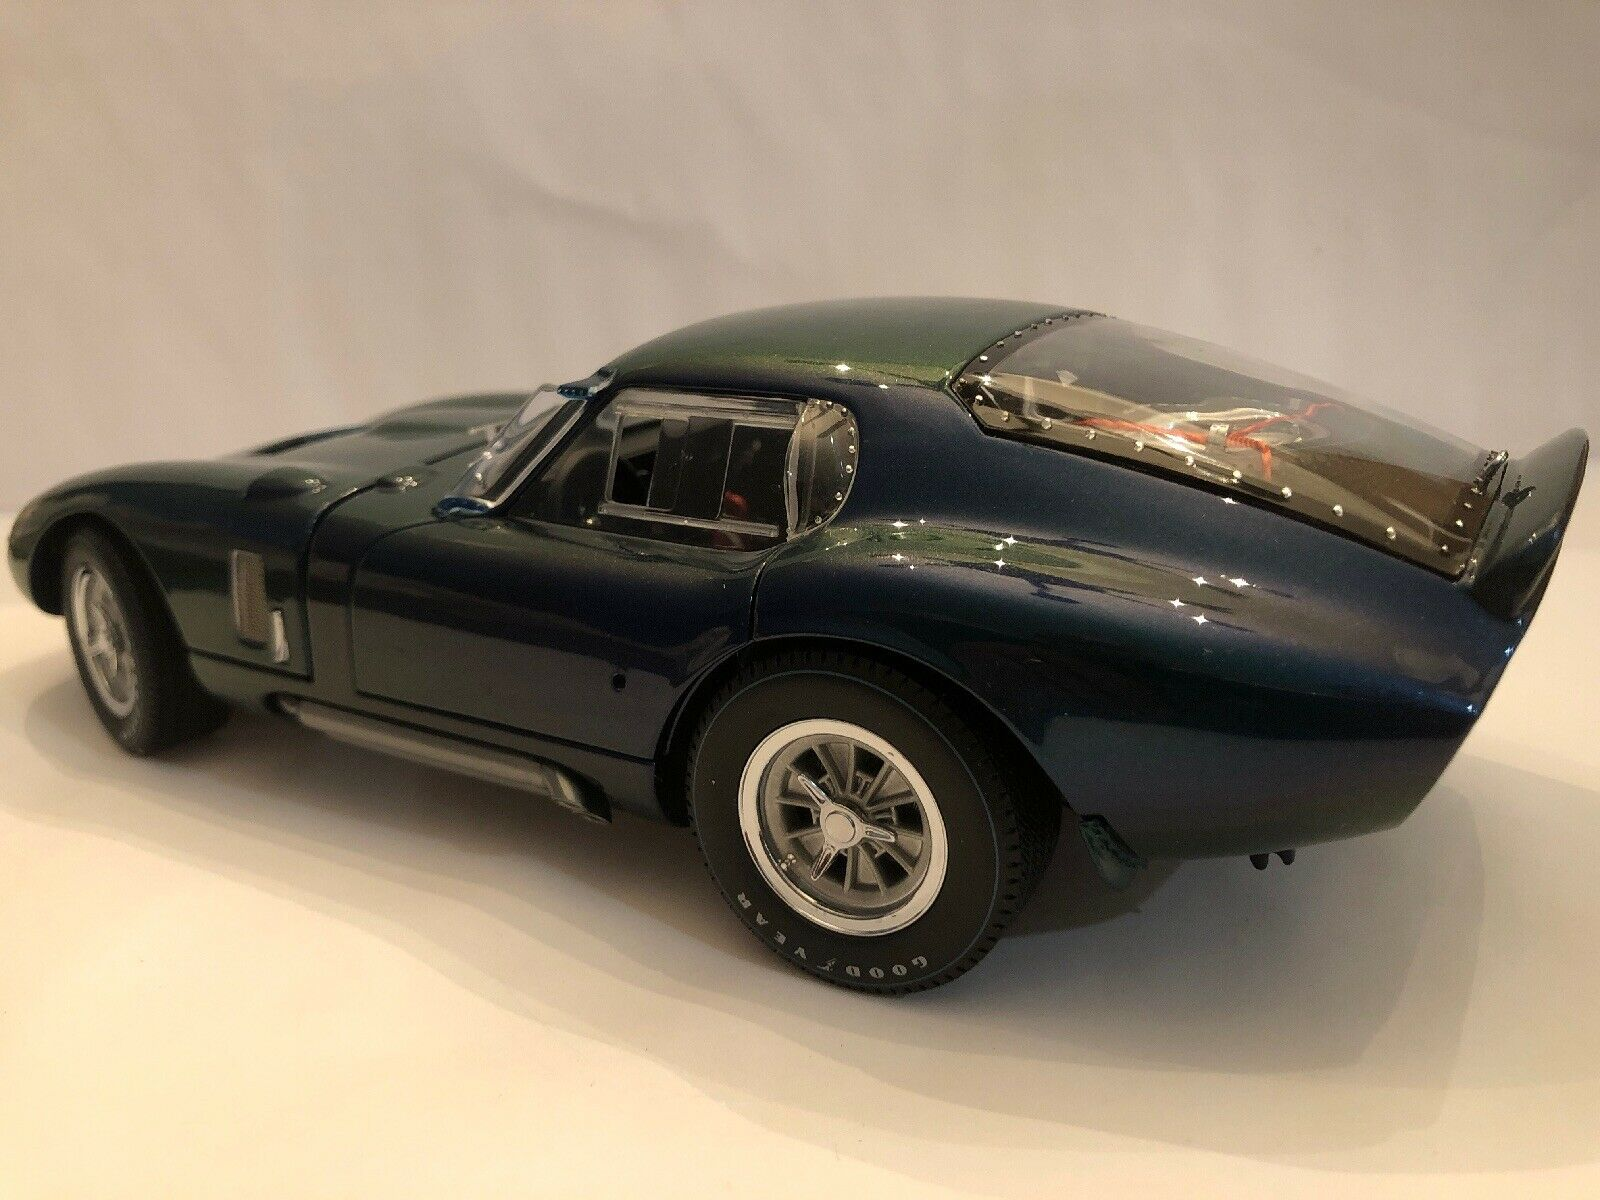 1 18 SCALE EXOTO RACING LEGENDS BEAUTIFUL ( ALUMINUM ) 1965 COBRA DAYTONA COUPE